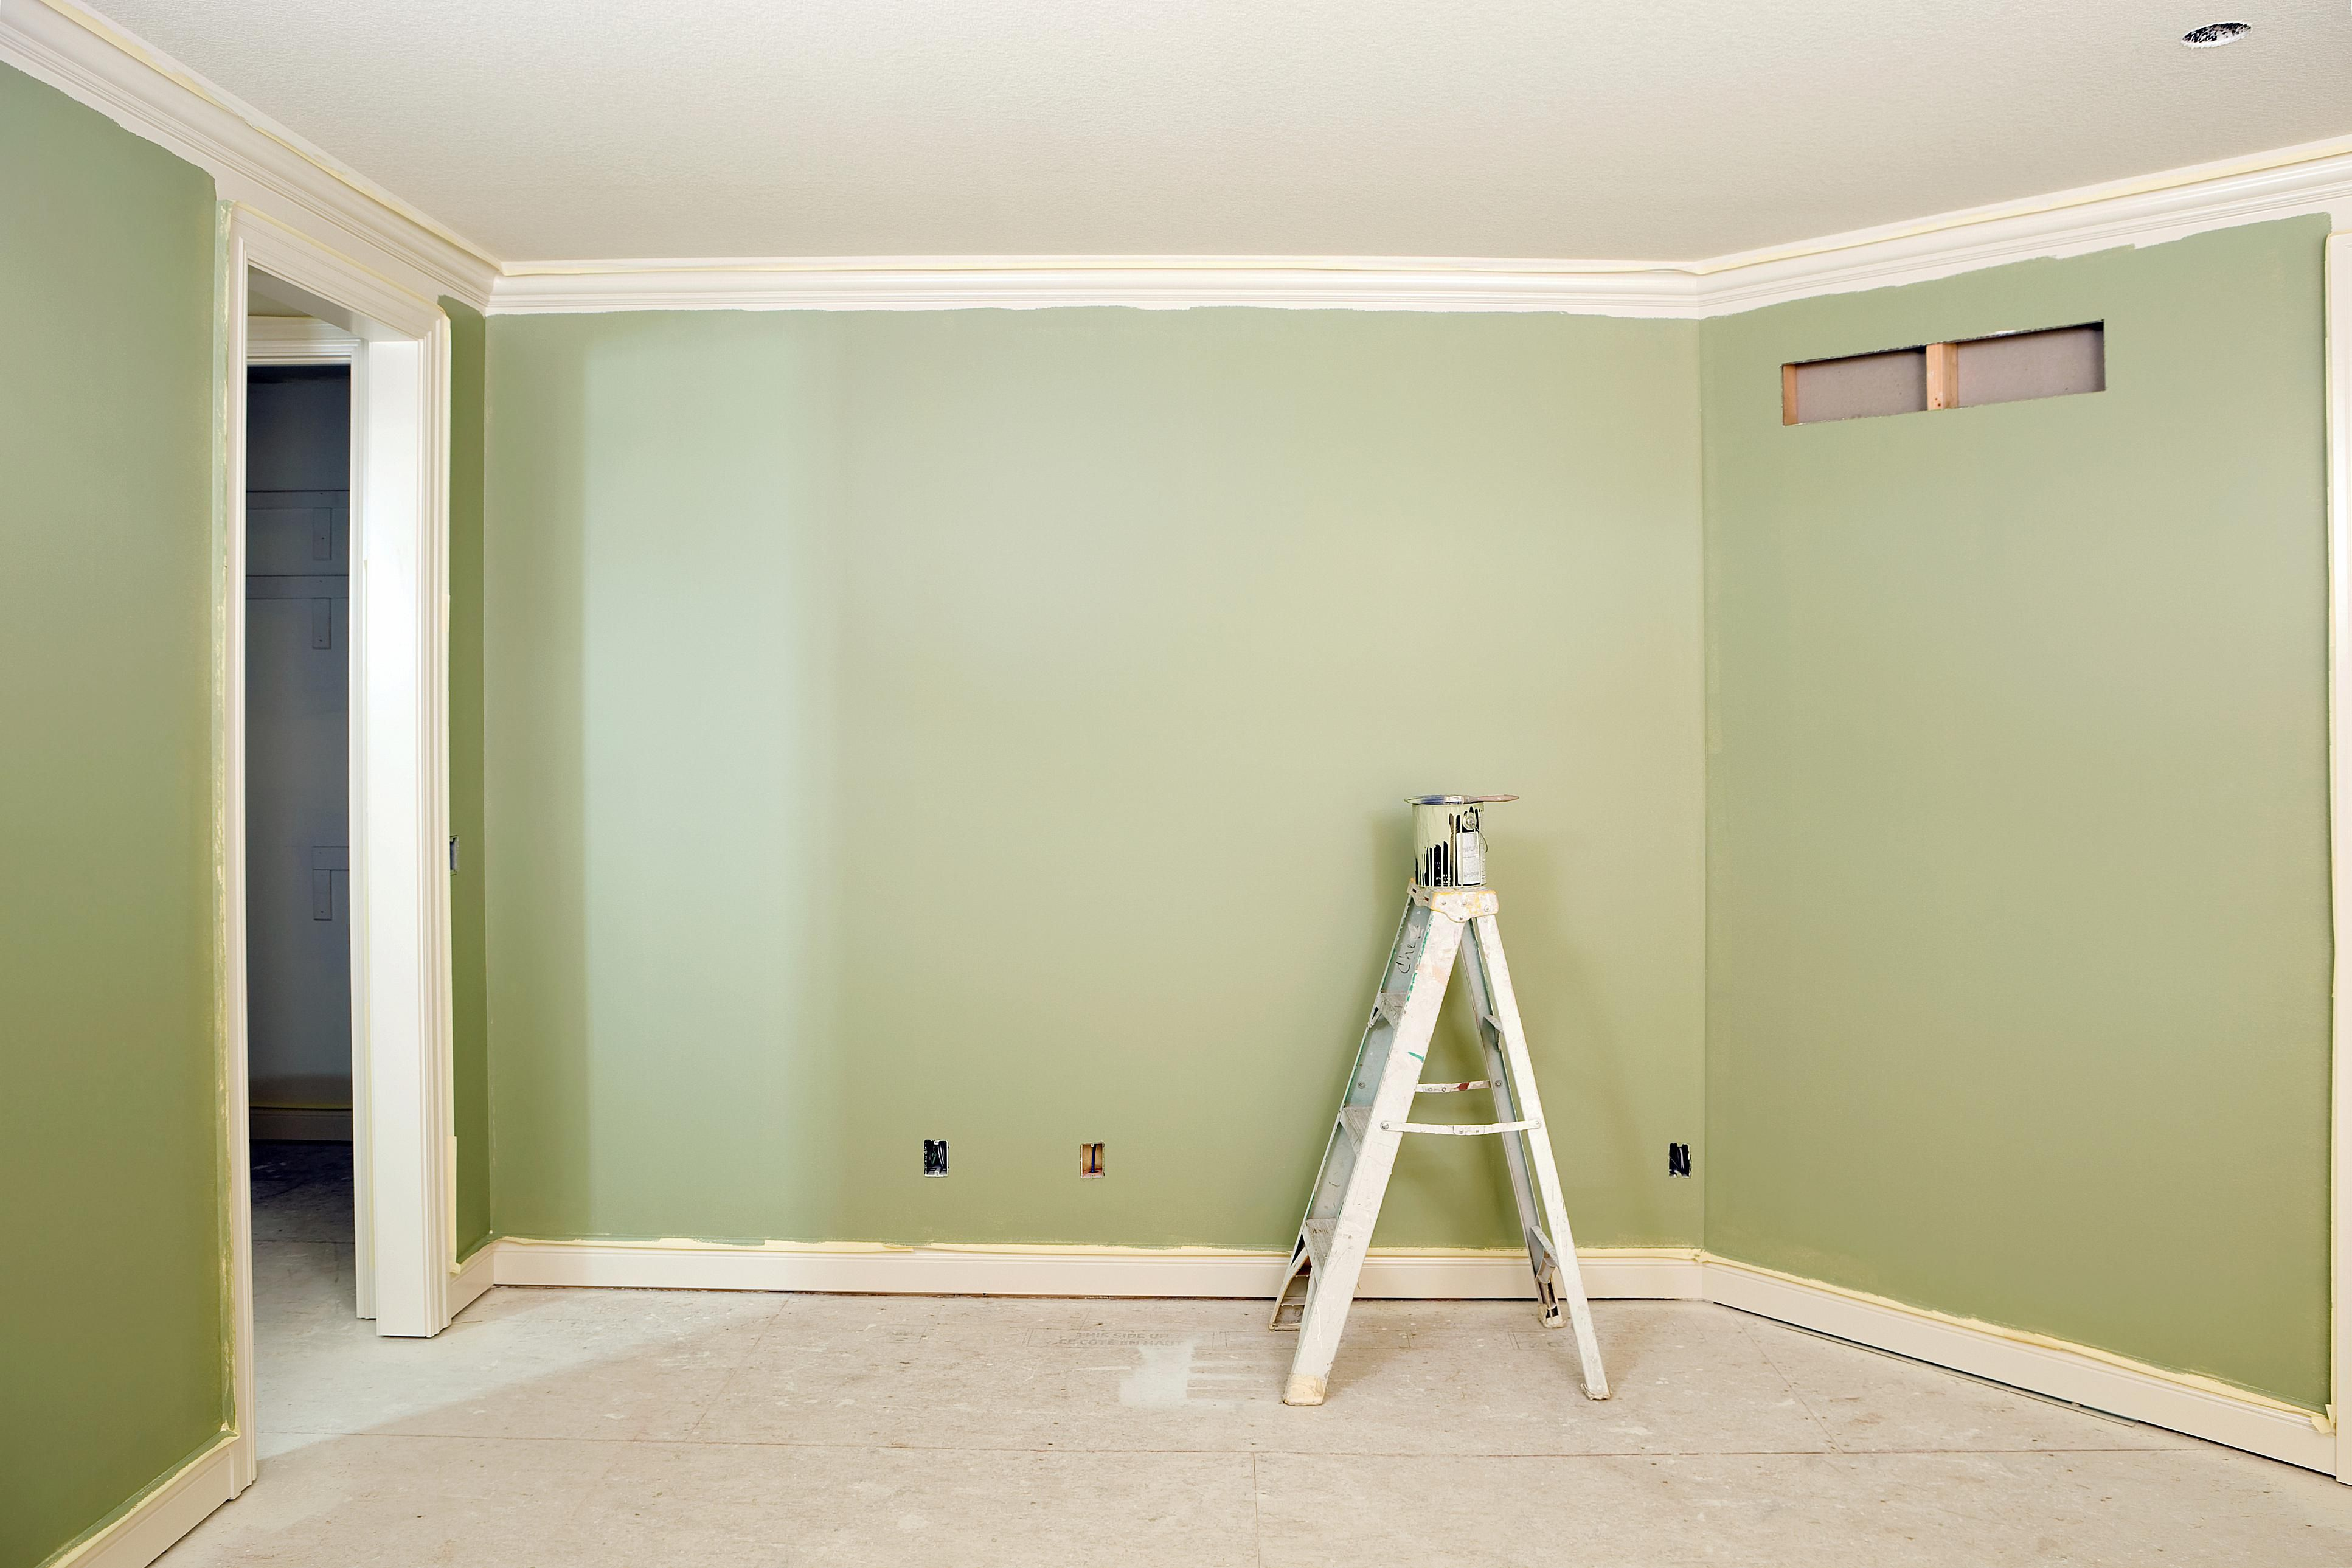 The Pros and Cons of Starting a Home Painting Business African Houses Painting Design on african interior, country house painting, german house painting, arab house painting, exotic house painting, beach house painting, oriental house painting, outdoor house painting, russian house painting, african art, swiss house painting, european house painting, rock house painting, african electrician, mexican house painting, hispanic house painting, japanese house painting, caribbean house painting, british house painting, beautiful house painting,